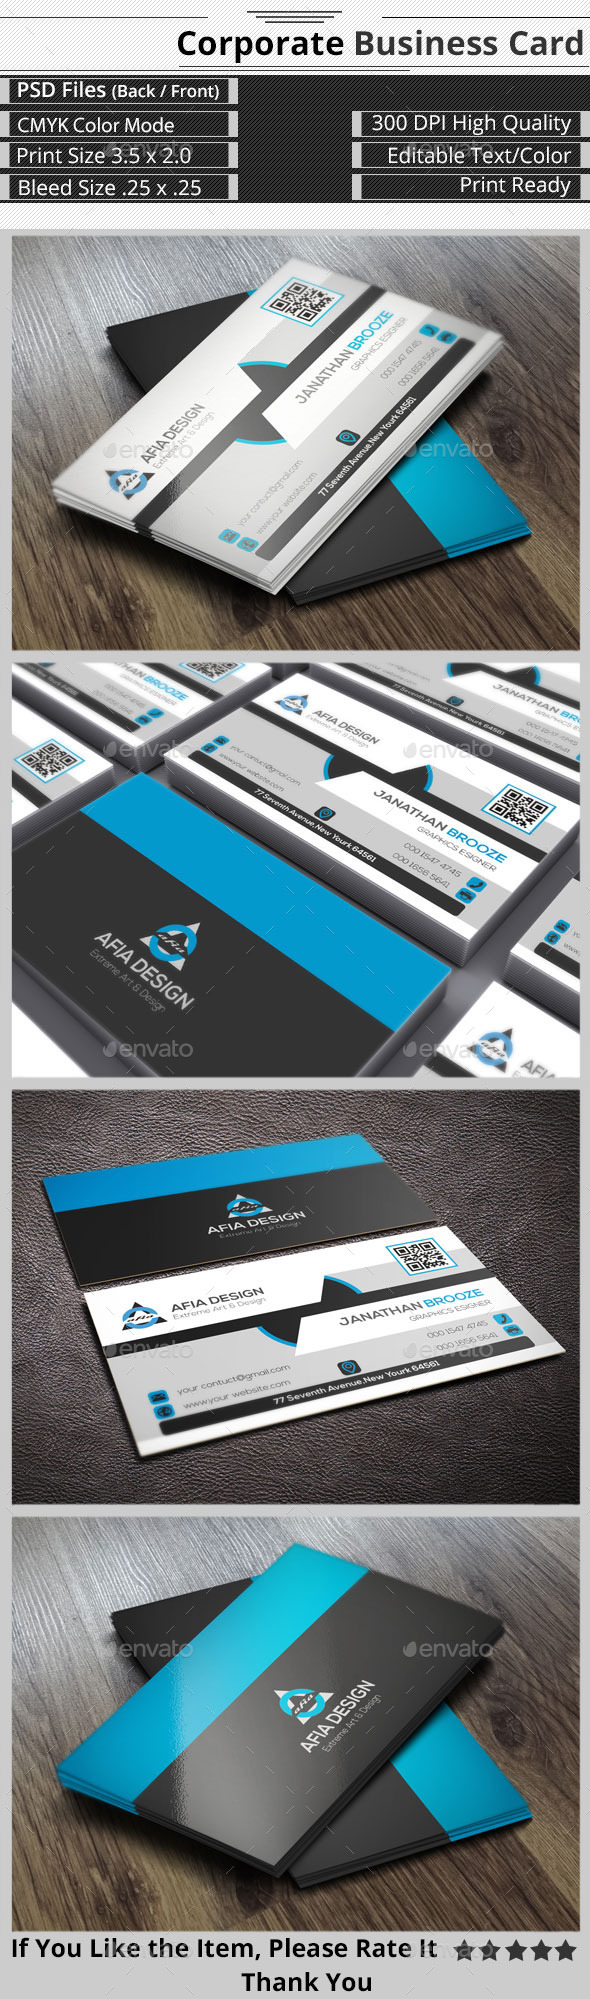 Clean & Creative Corporate Business Card